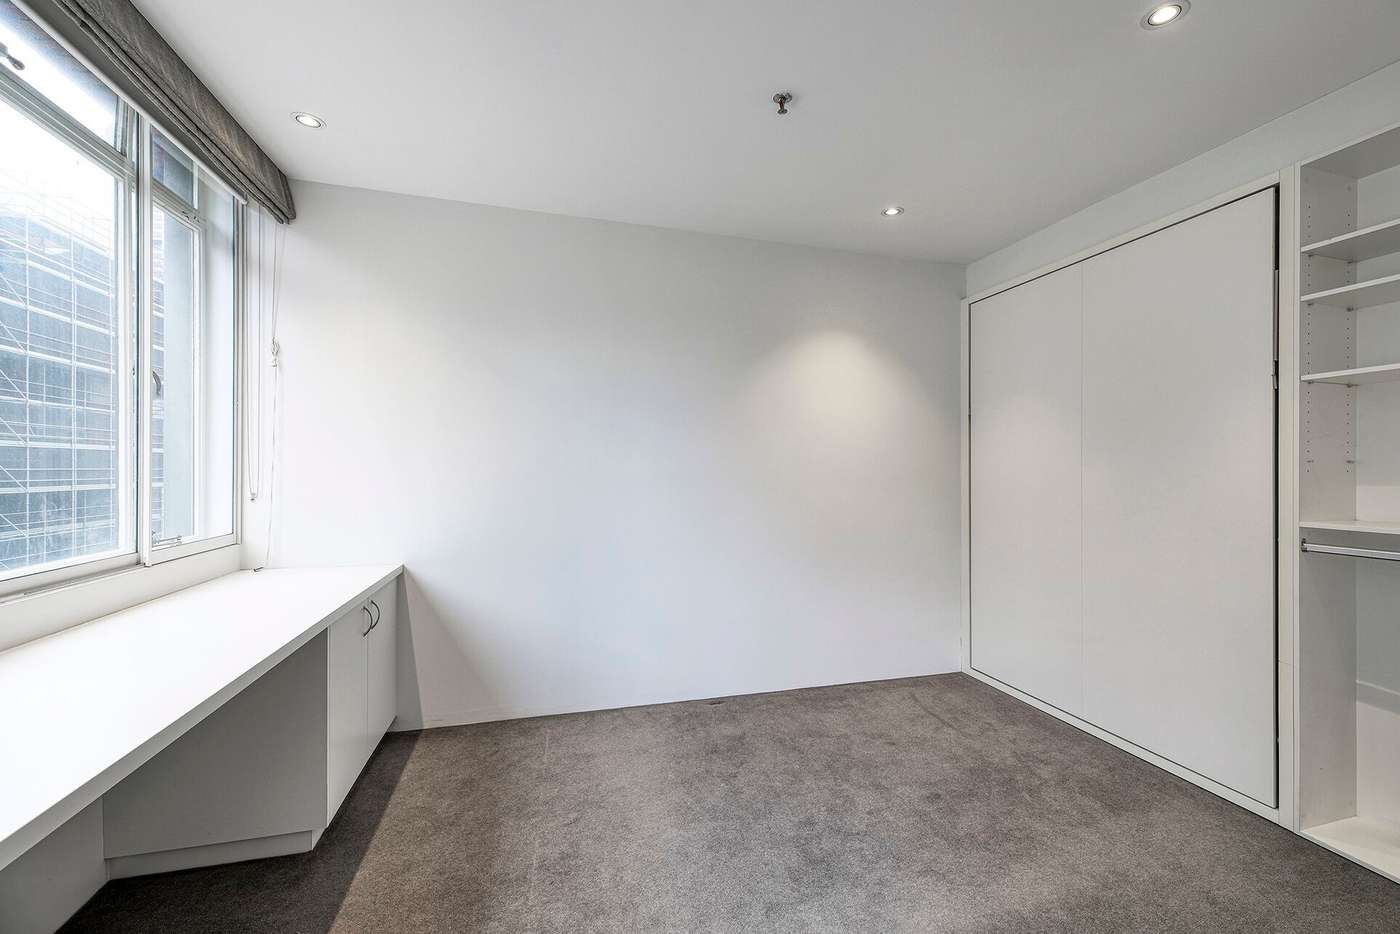 Sixth view of Homely apartment listing, 21/44 Bridge Street, Sydney NSW 2000